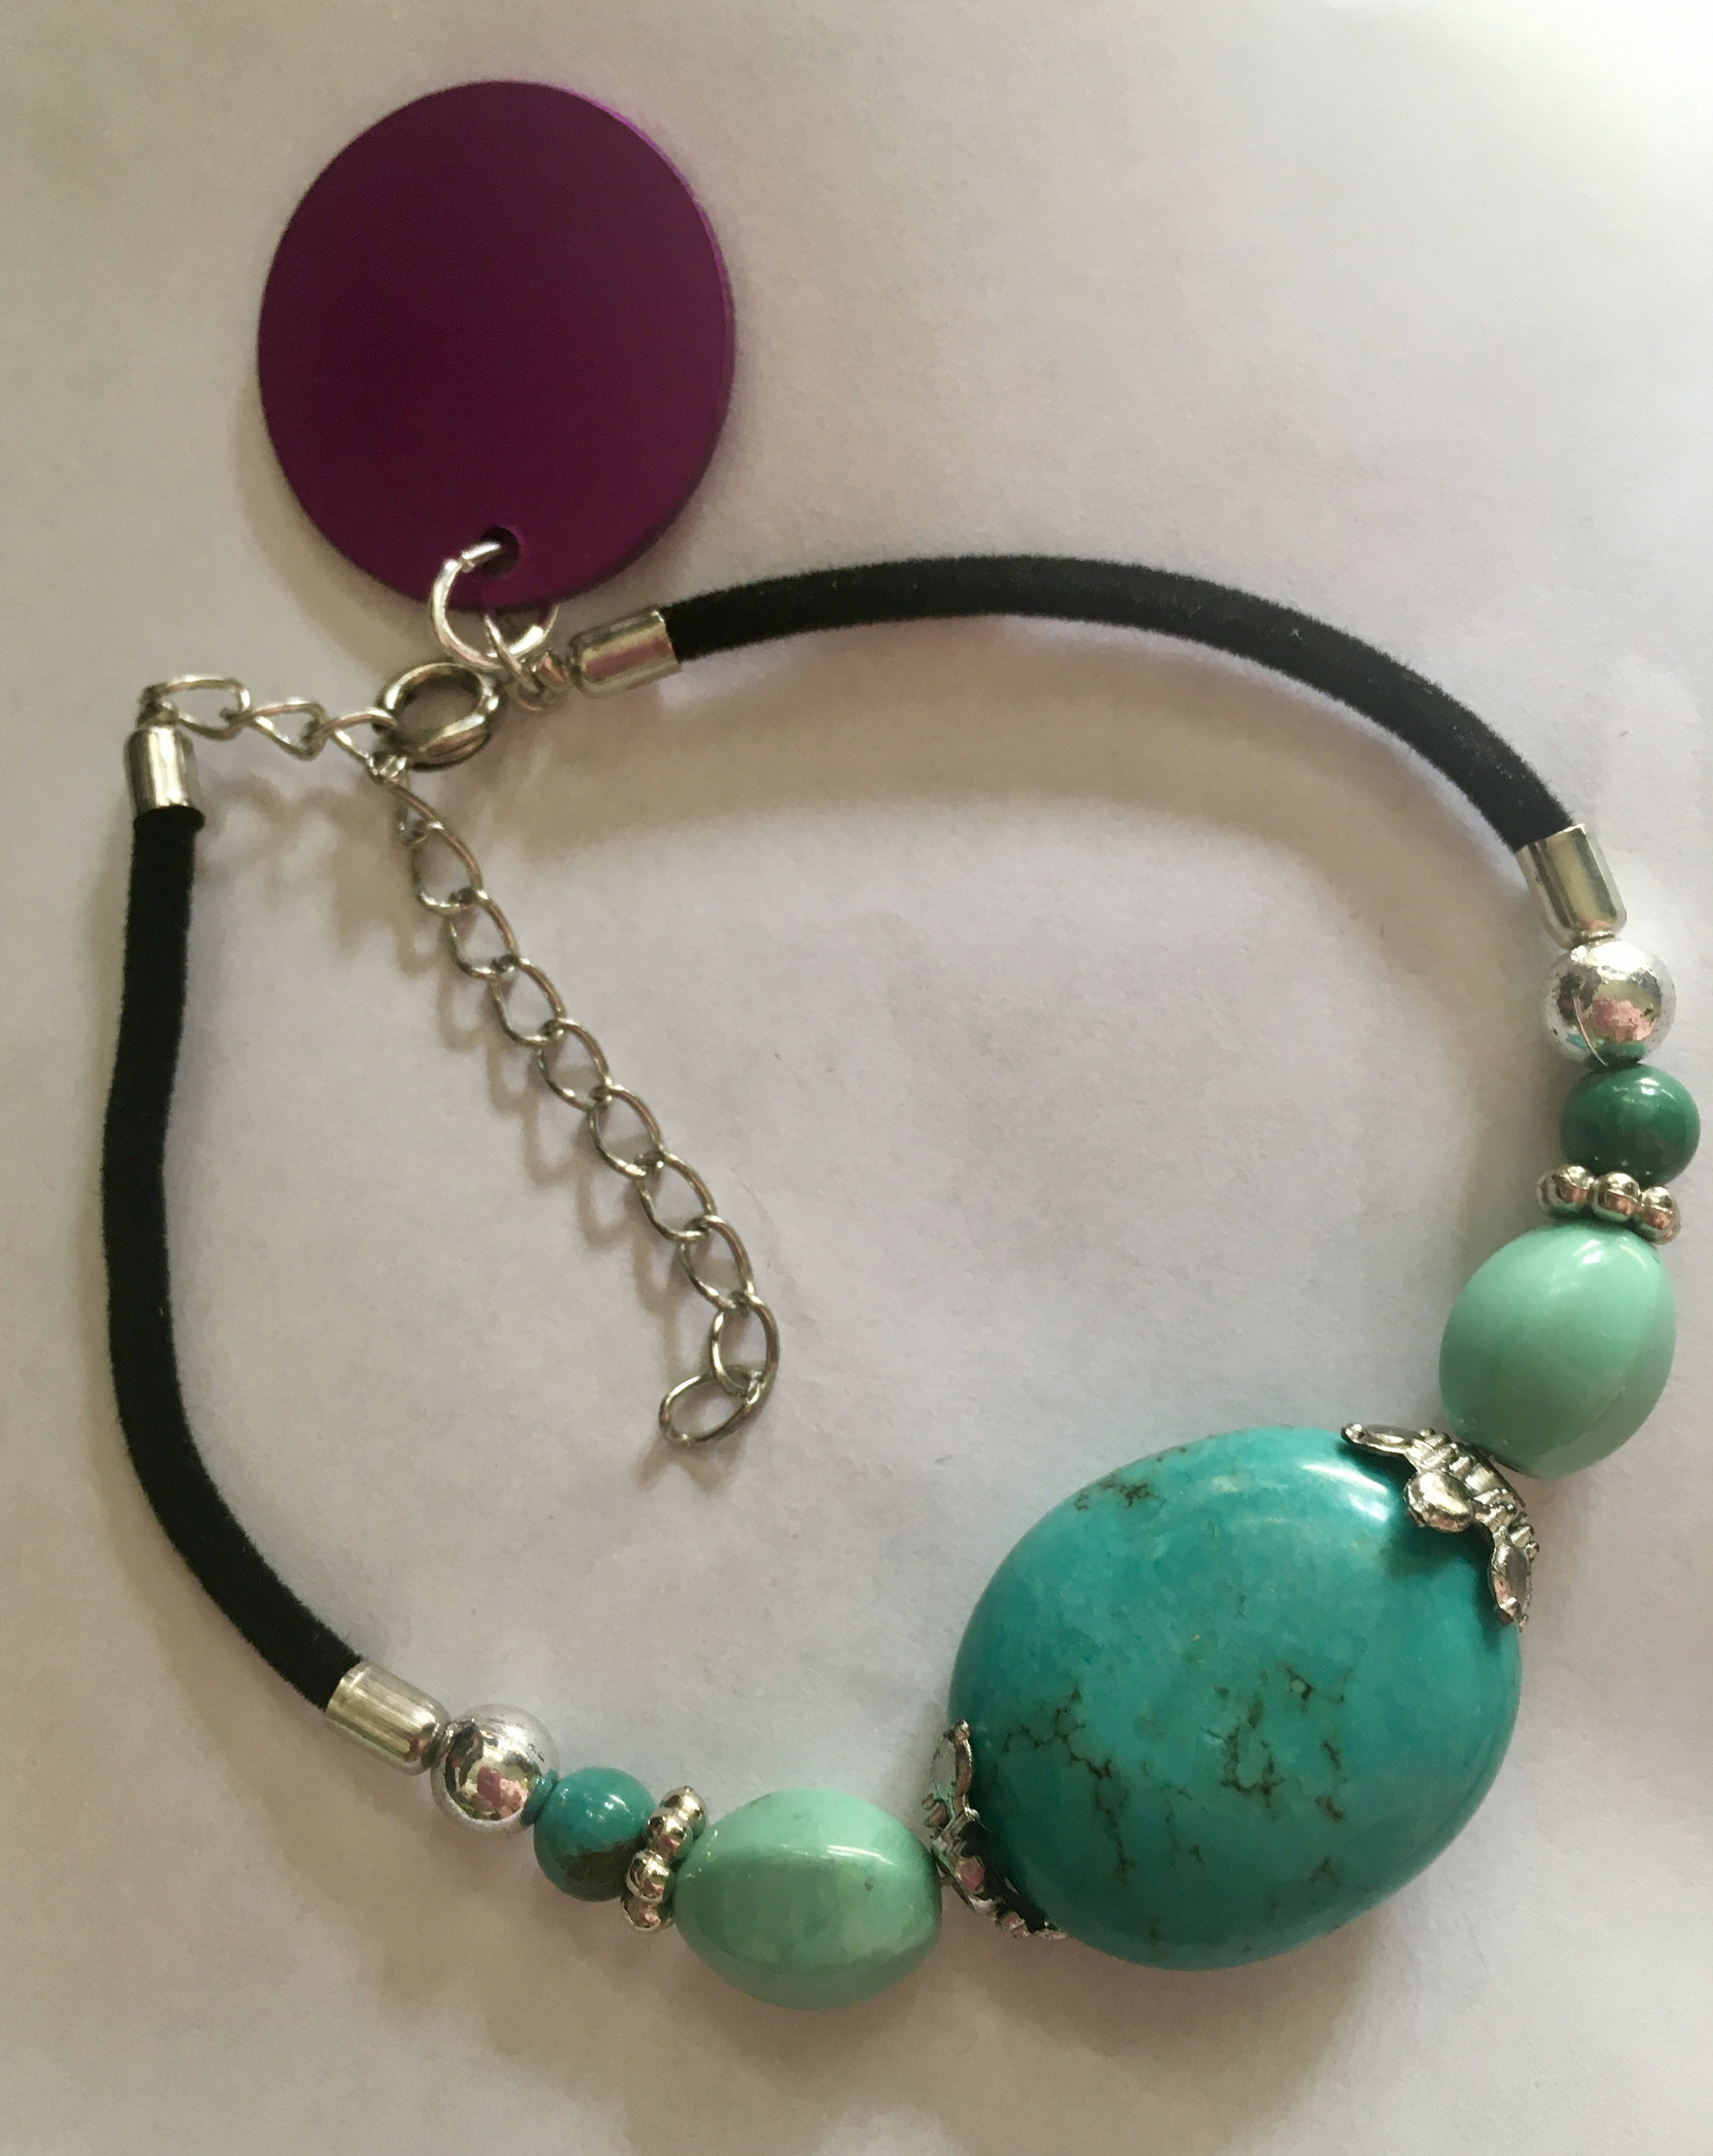 Large Turquoise Stone on Cord w/Energy Disk